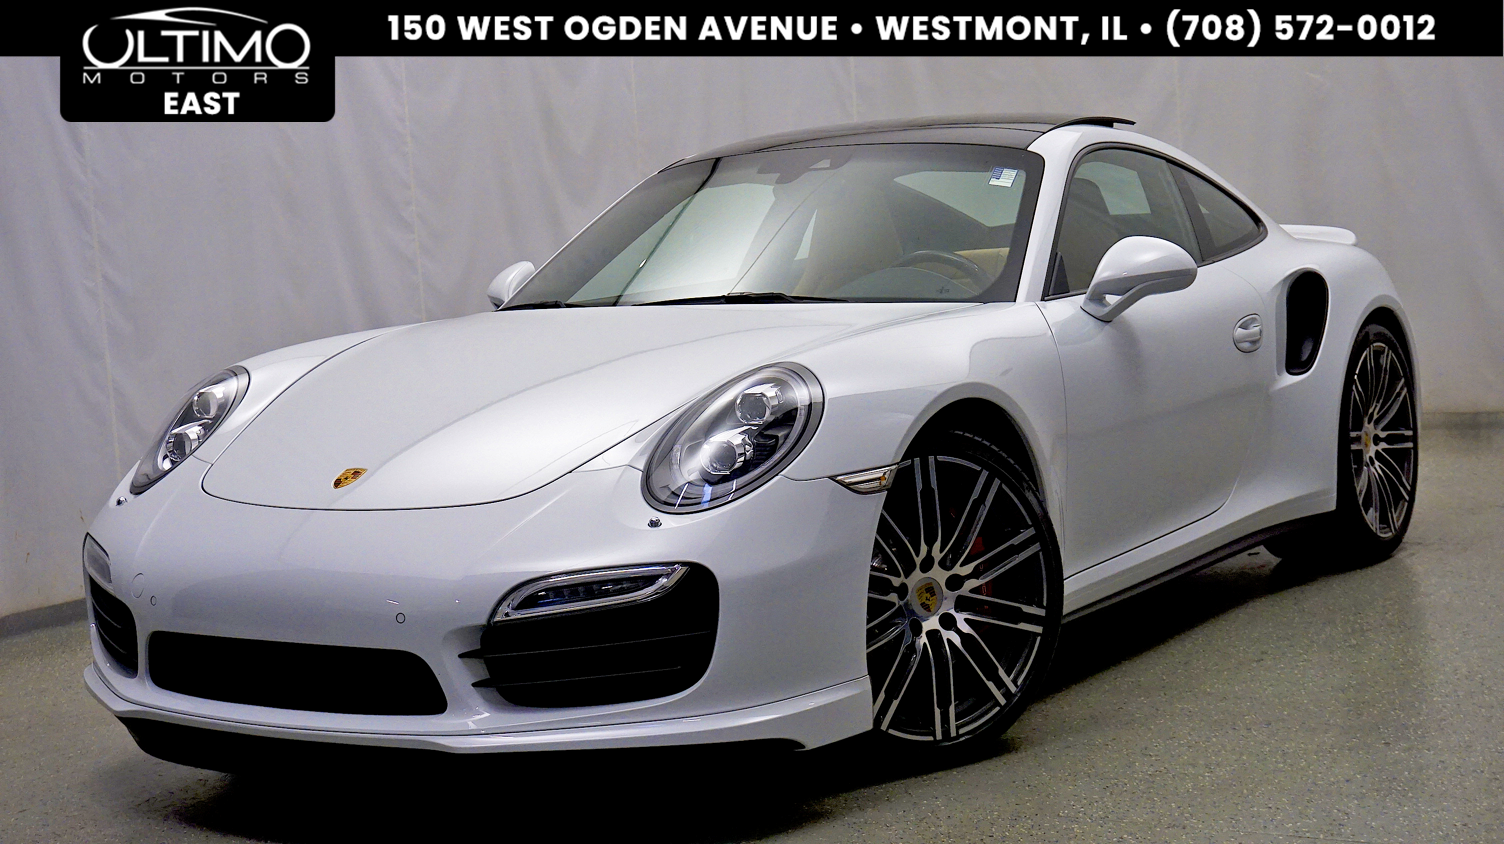 Pre-Owned 2015 Porsche 911 Turbo Sport Chrono Pkg, Premium Pkg Plus, Carbon Interior $170,145 MSRP